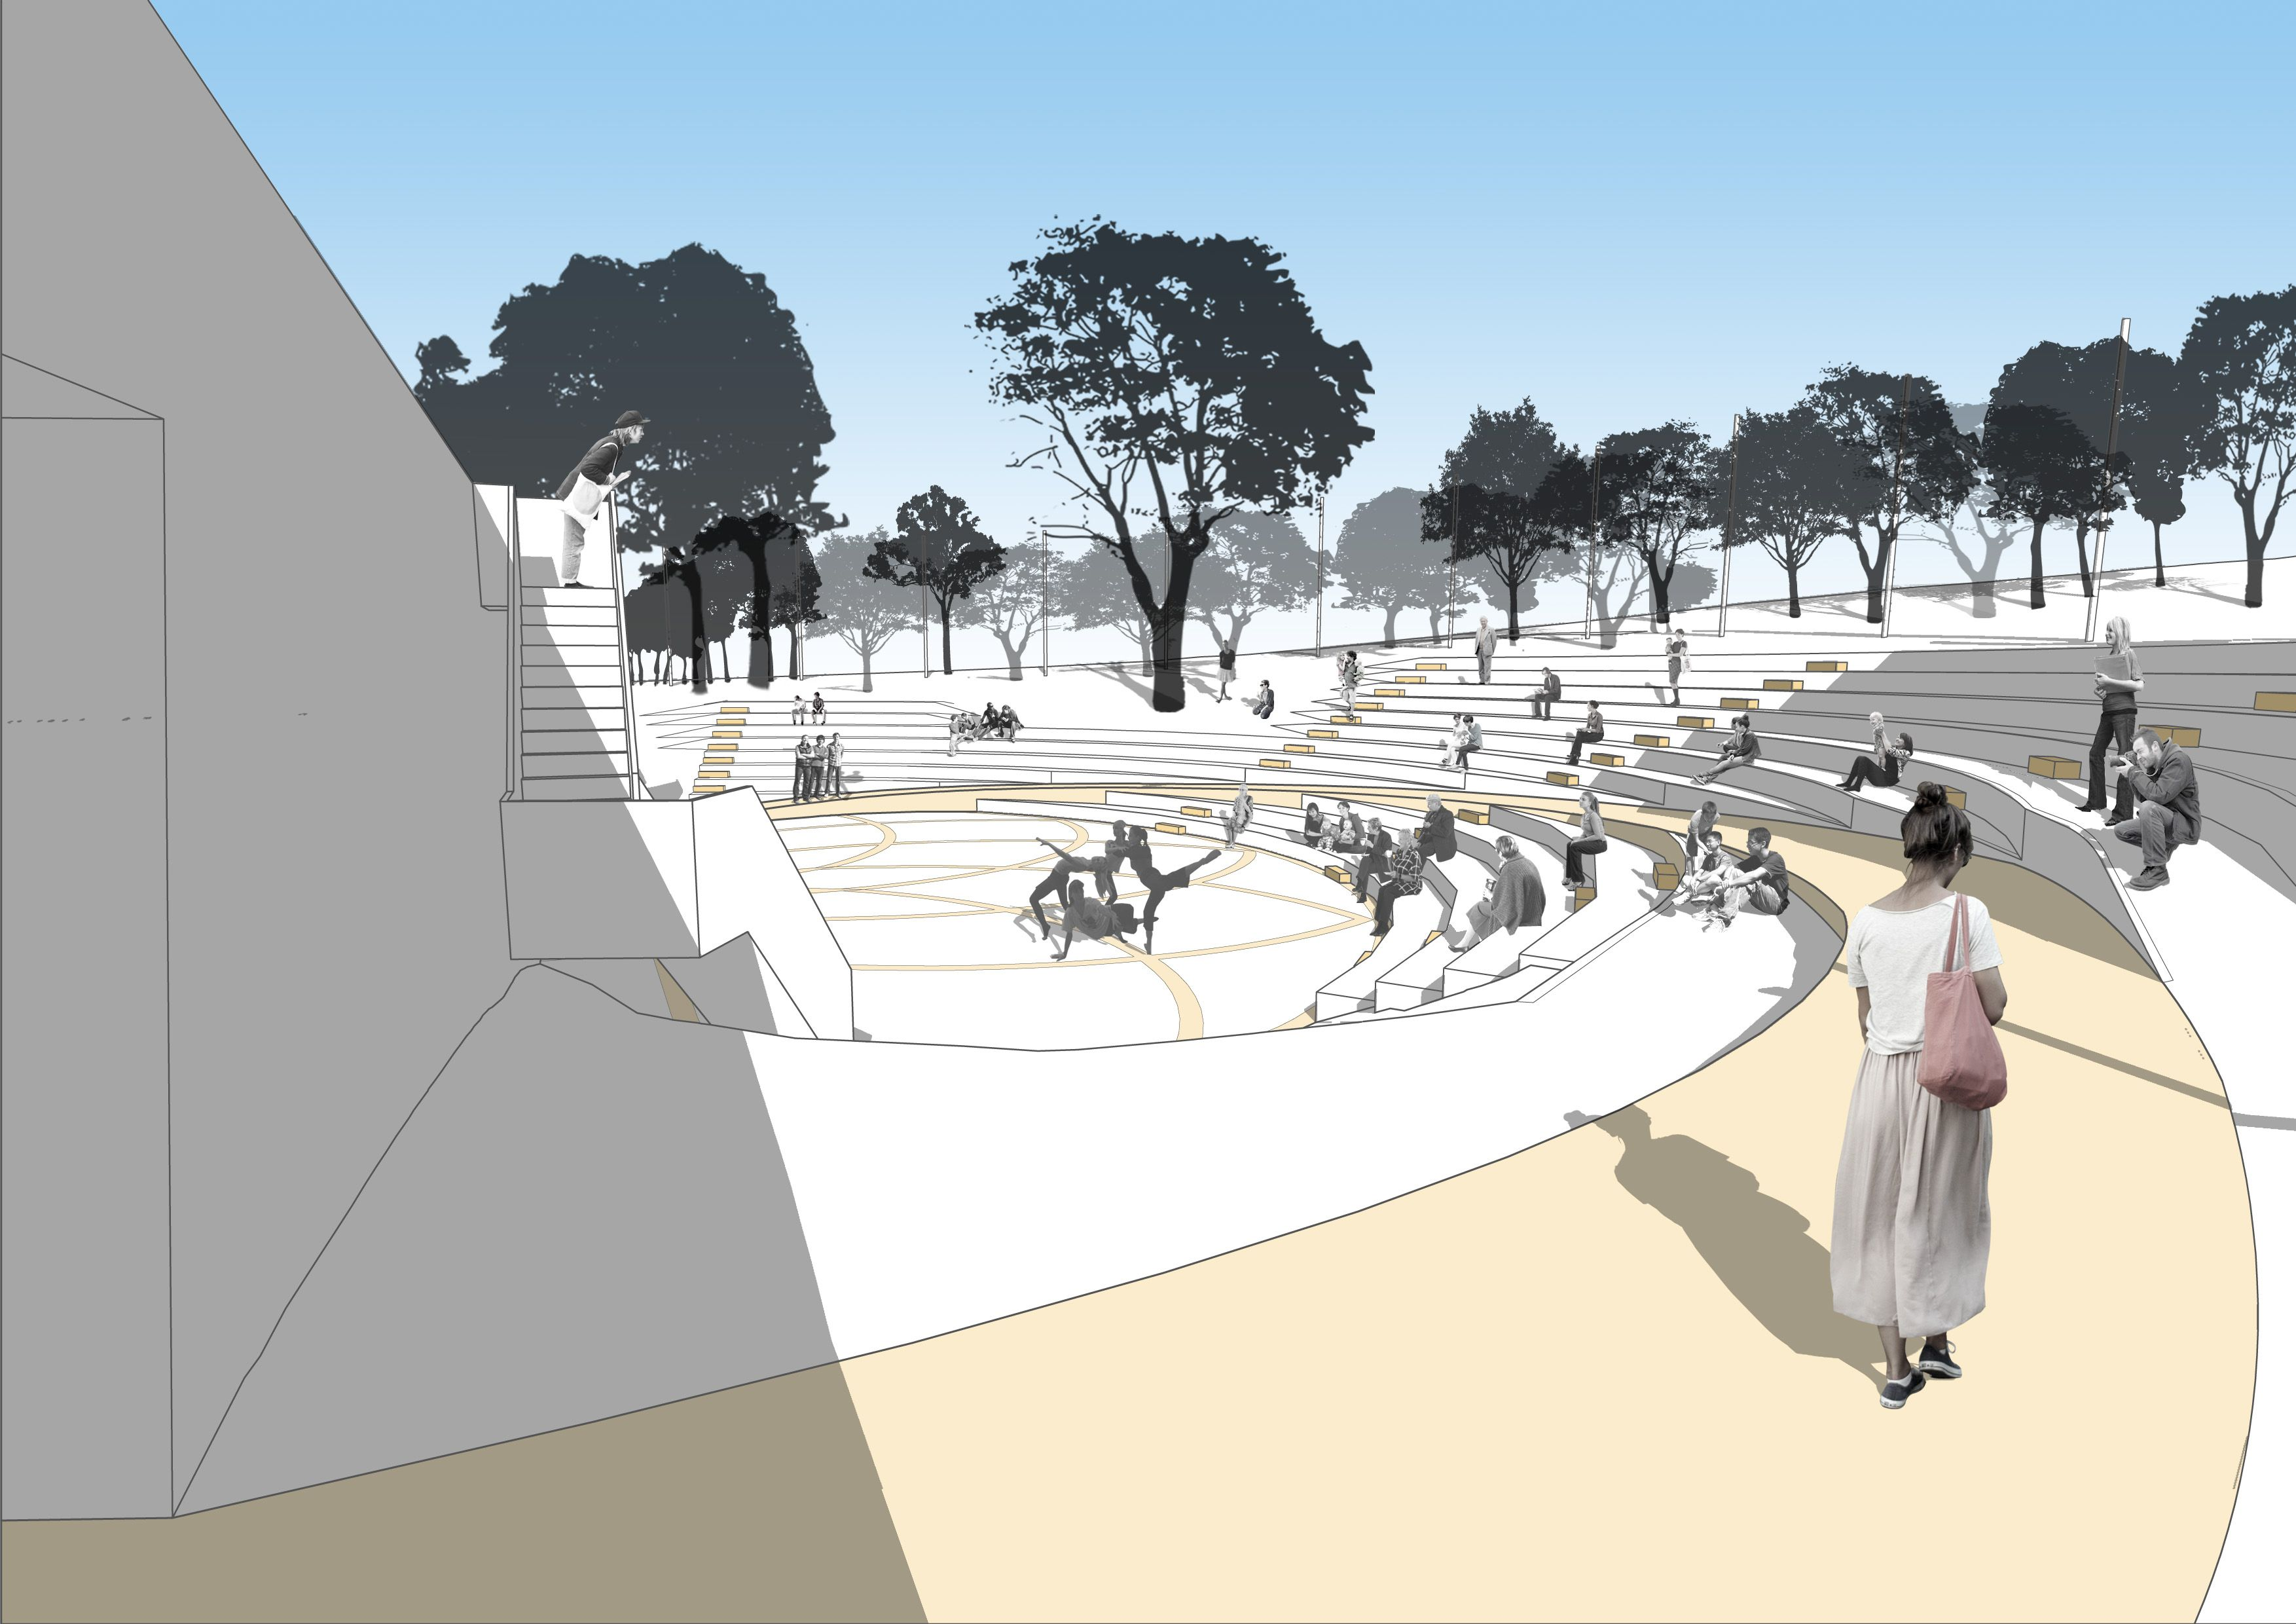 Crater site could openair theatre (With images